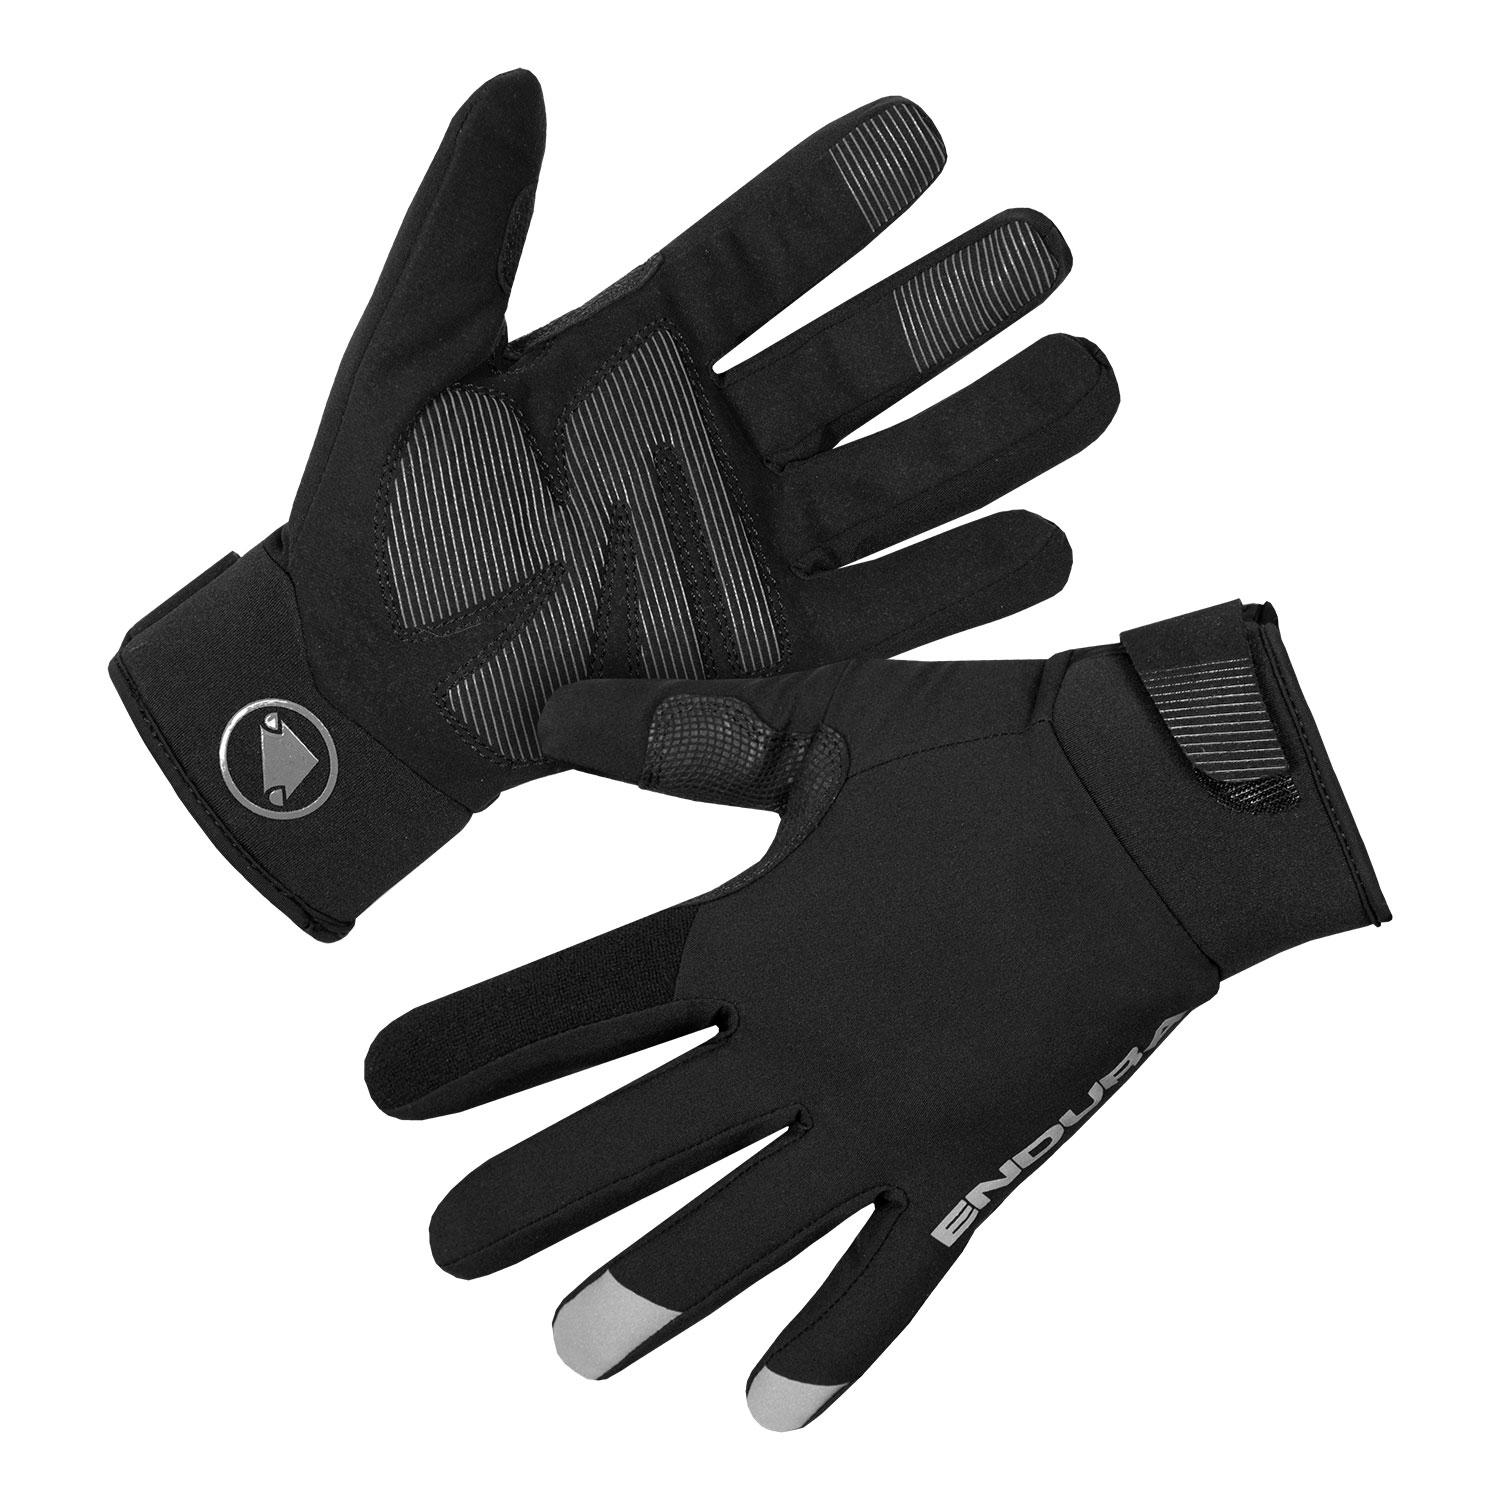 Endura Fietshandschoenen Winter Heren Zwart - Strike Glove Black